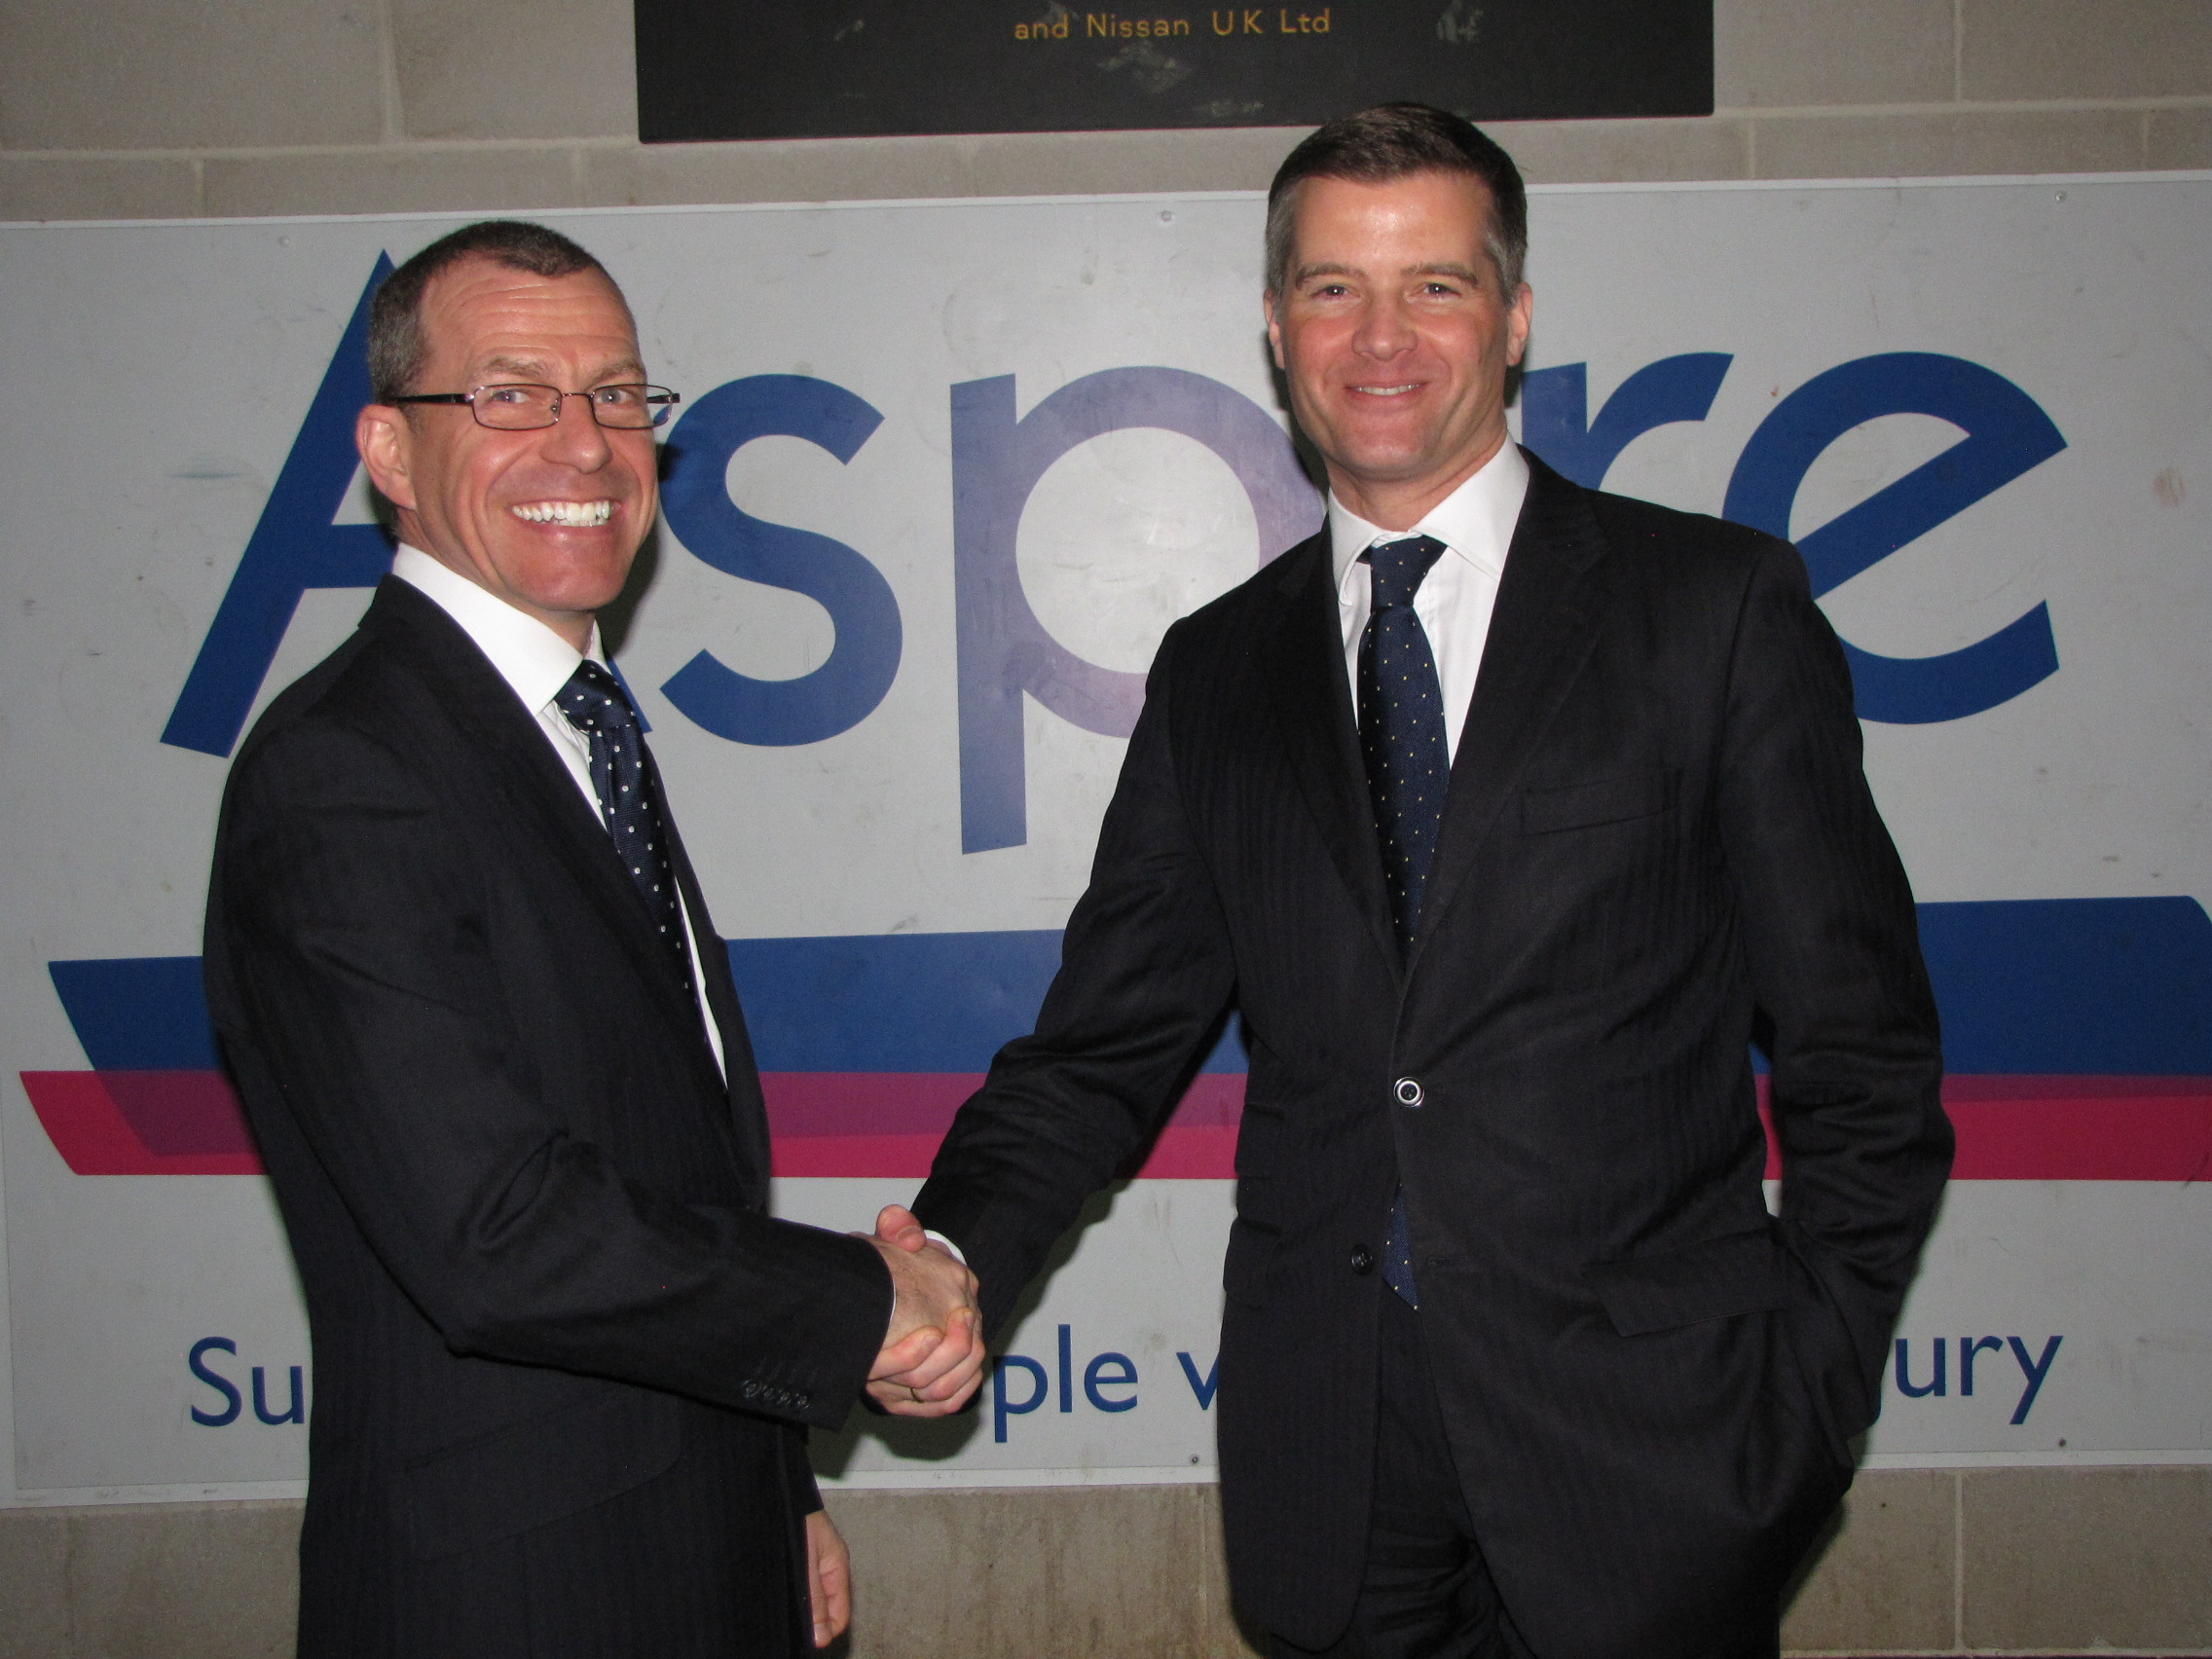 Aspire CEO Brian Carlin and Mark Harper MP